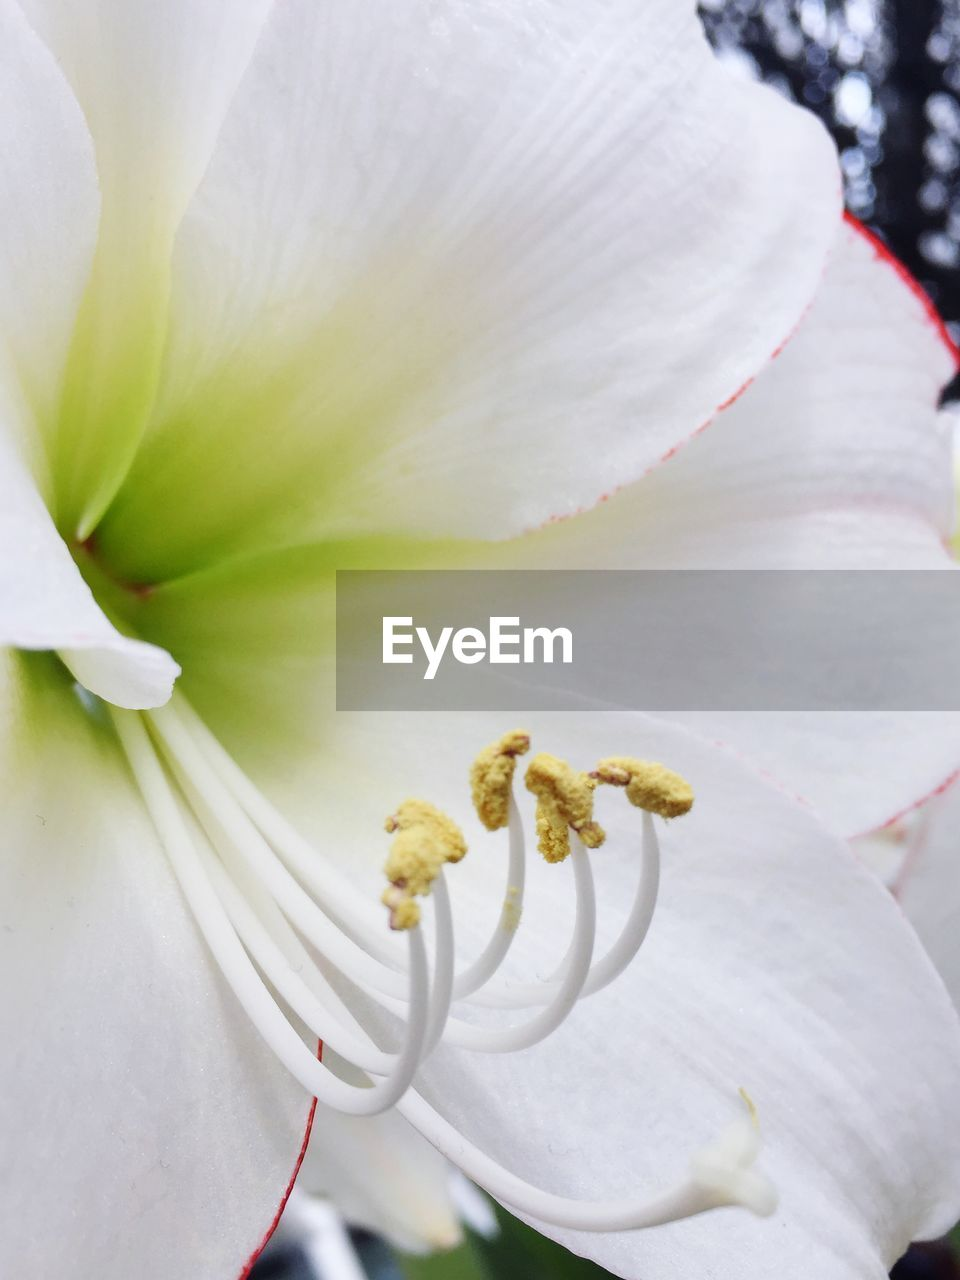 flower, white color, petal, fragility, beauty in nature, nature, close-up, growth, freshness, no people, flower head, stamen, day, plant, outdoors, blooming, tree